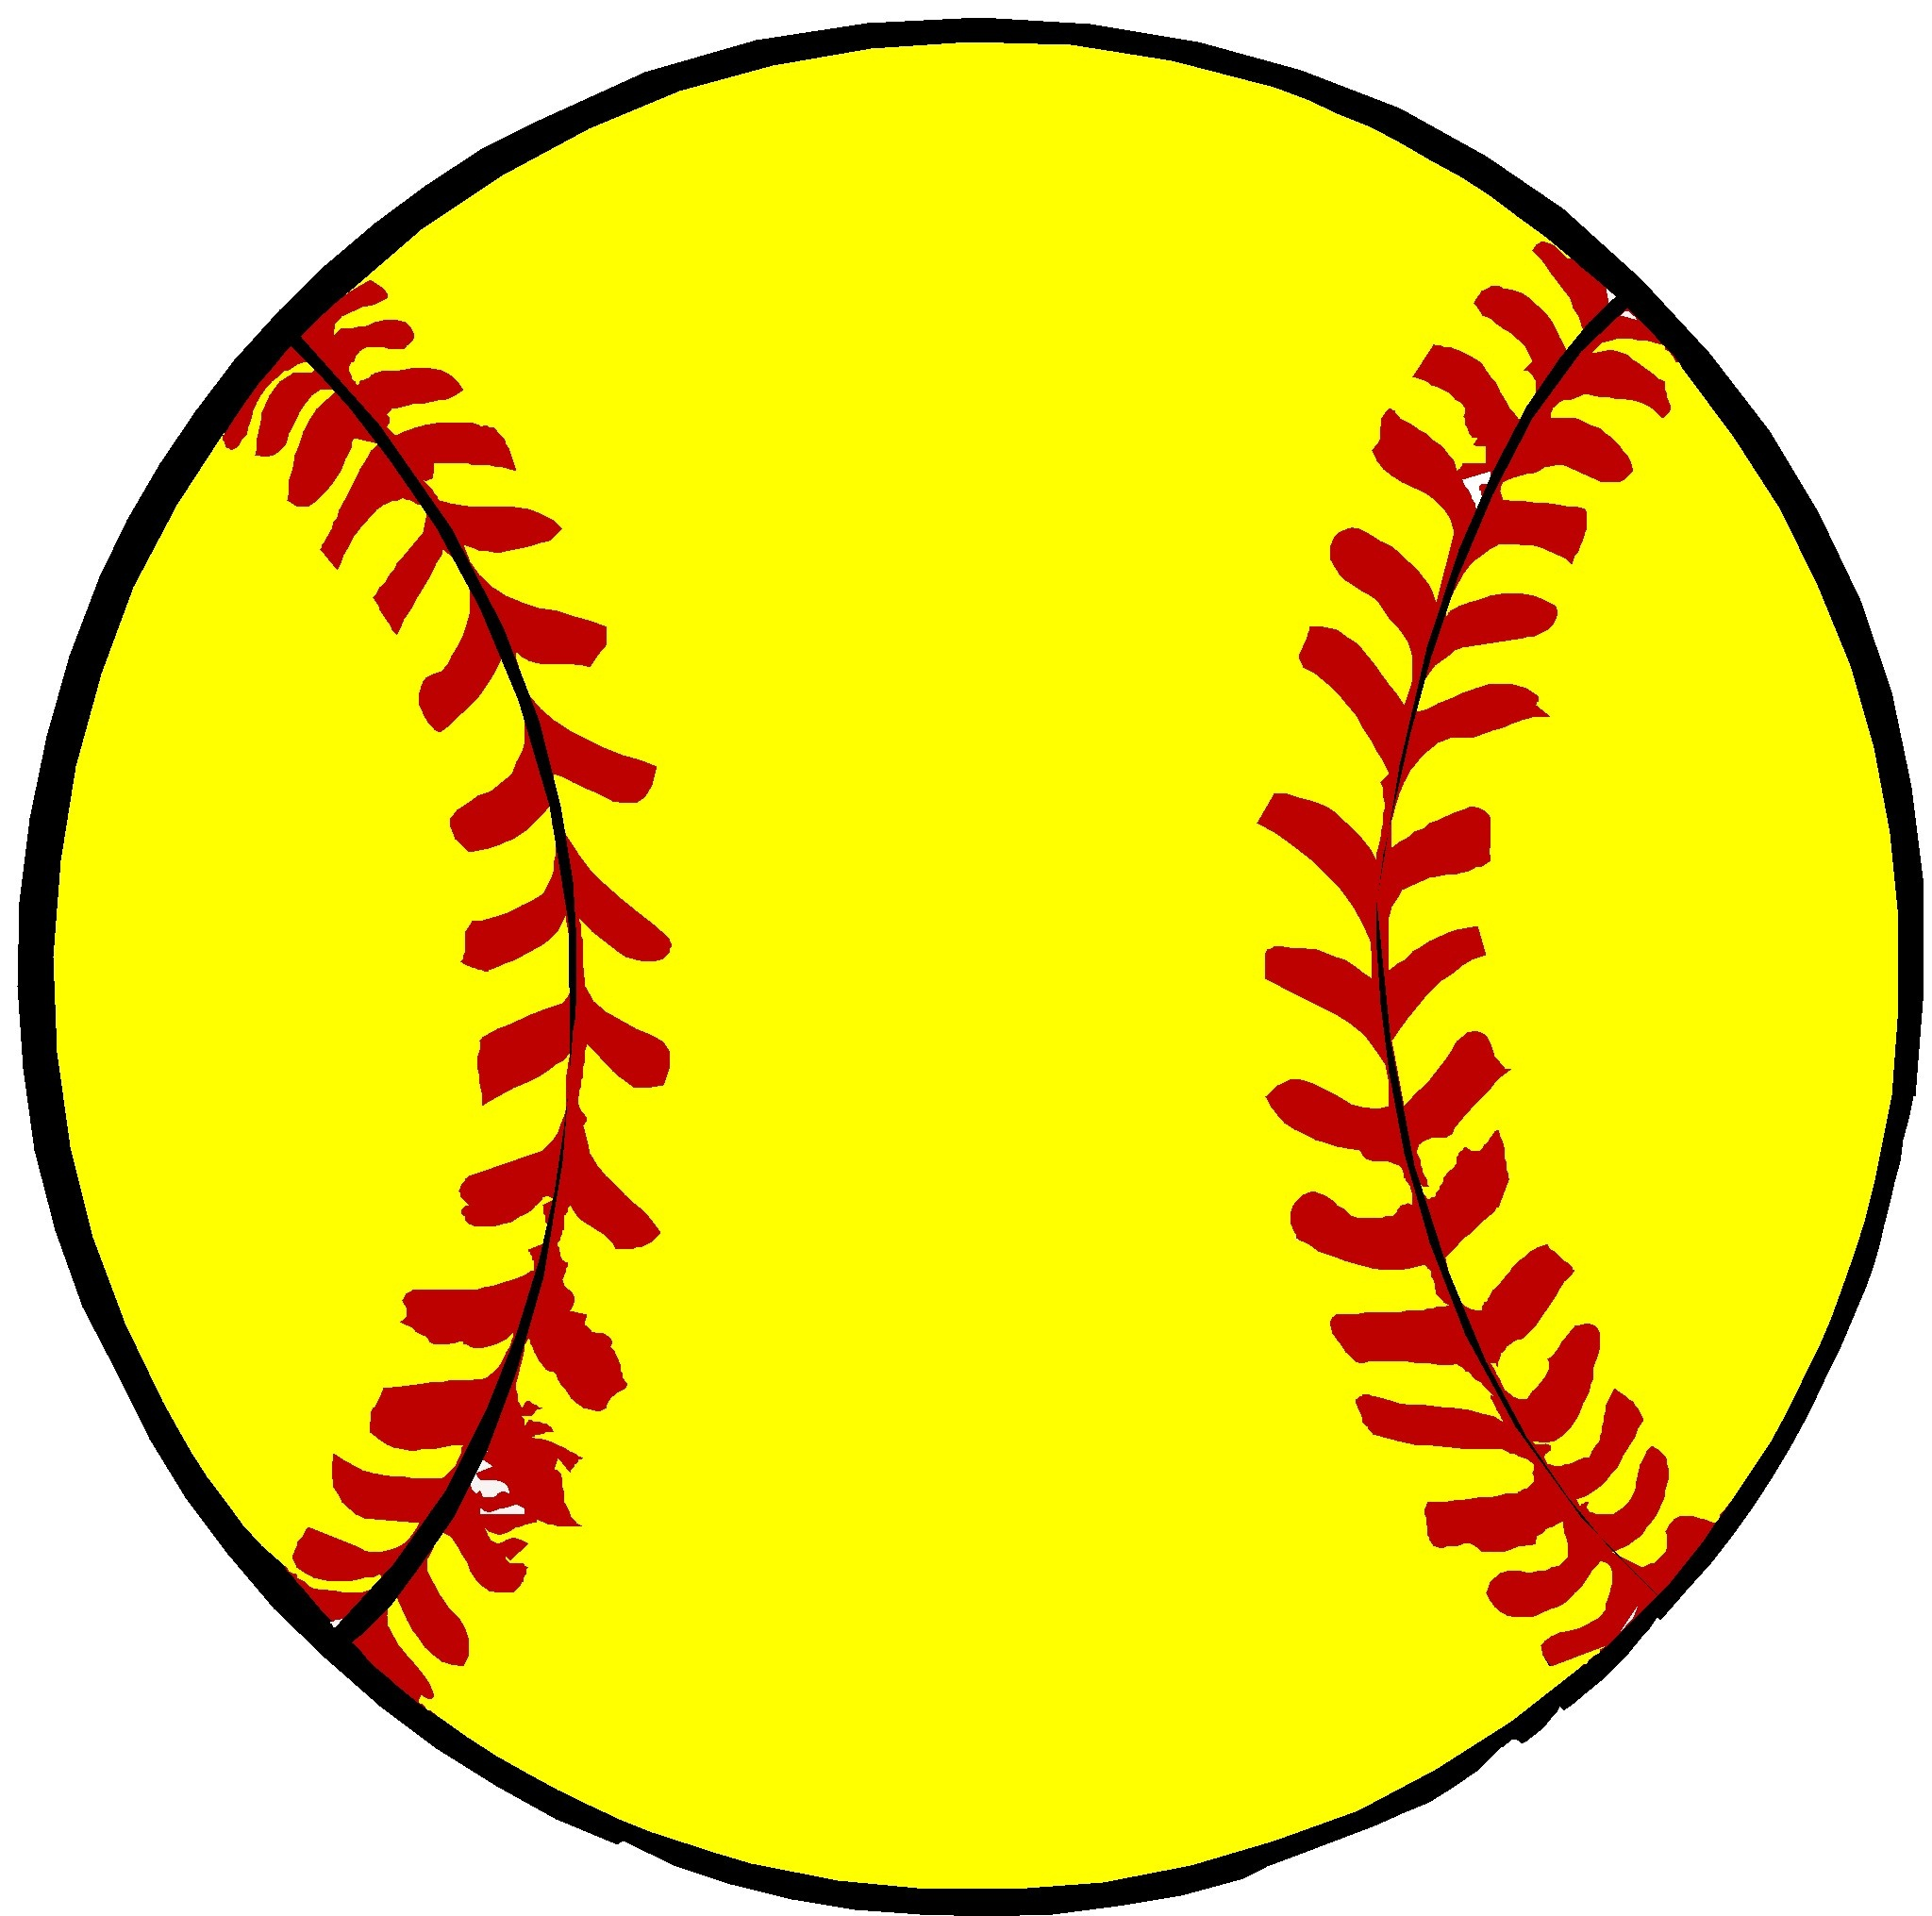 Free Softball Clipart | Free Download Best Free Softball Clipart On - Free Printable Softball Images